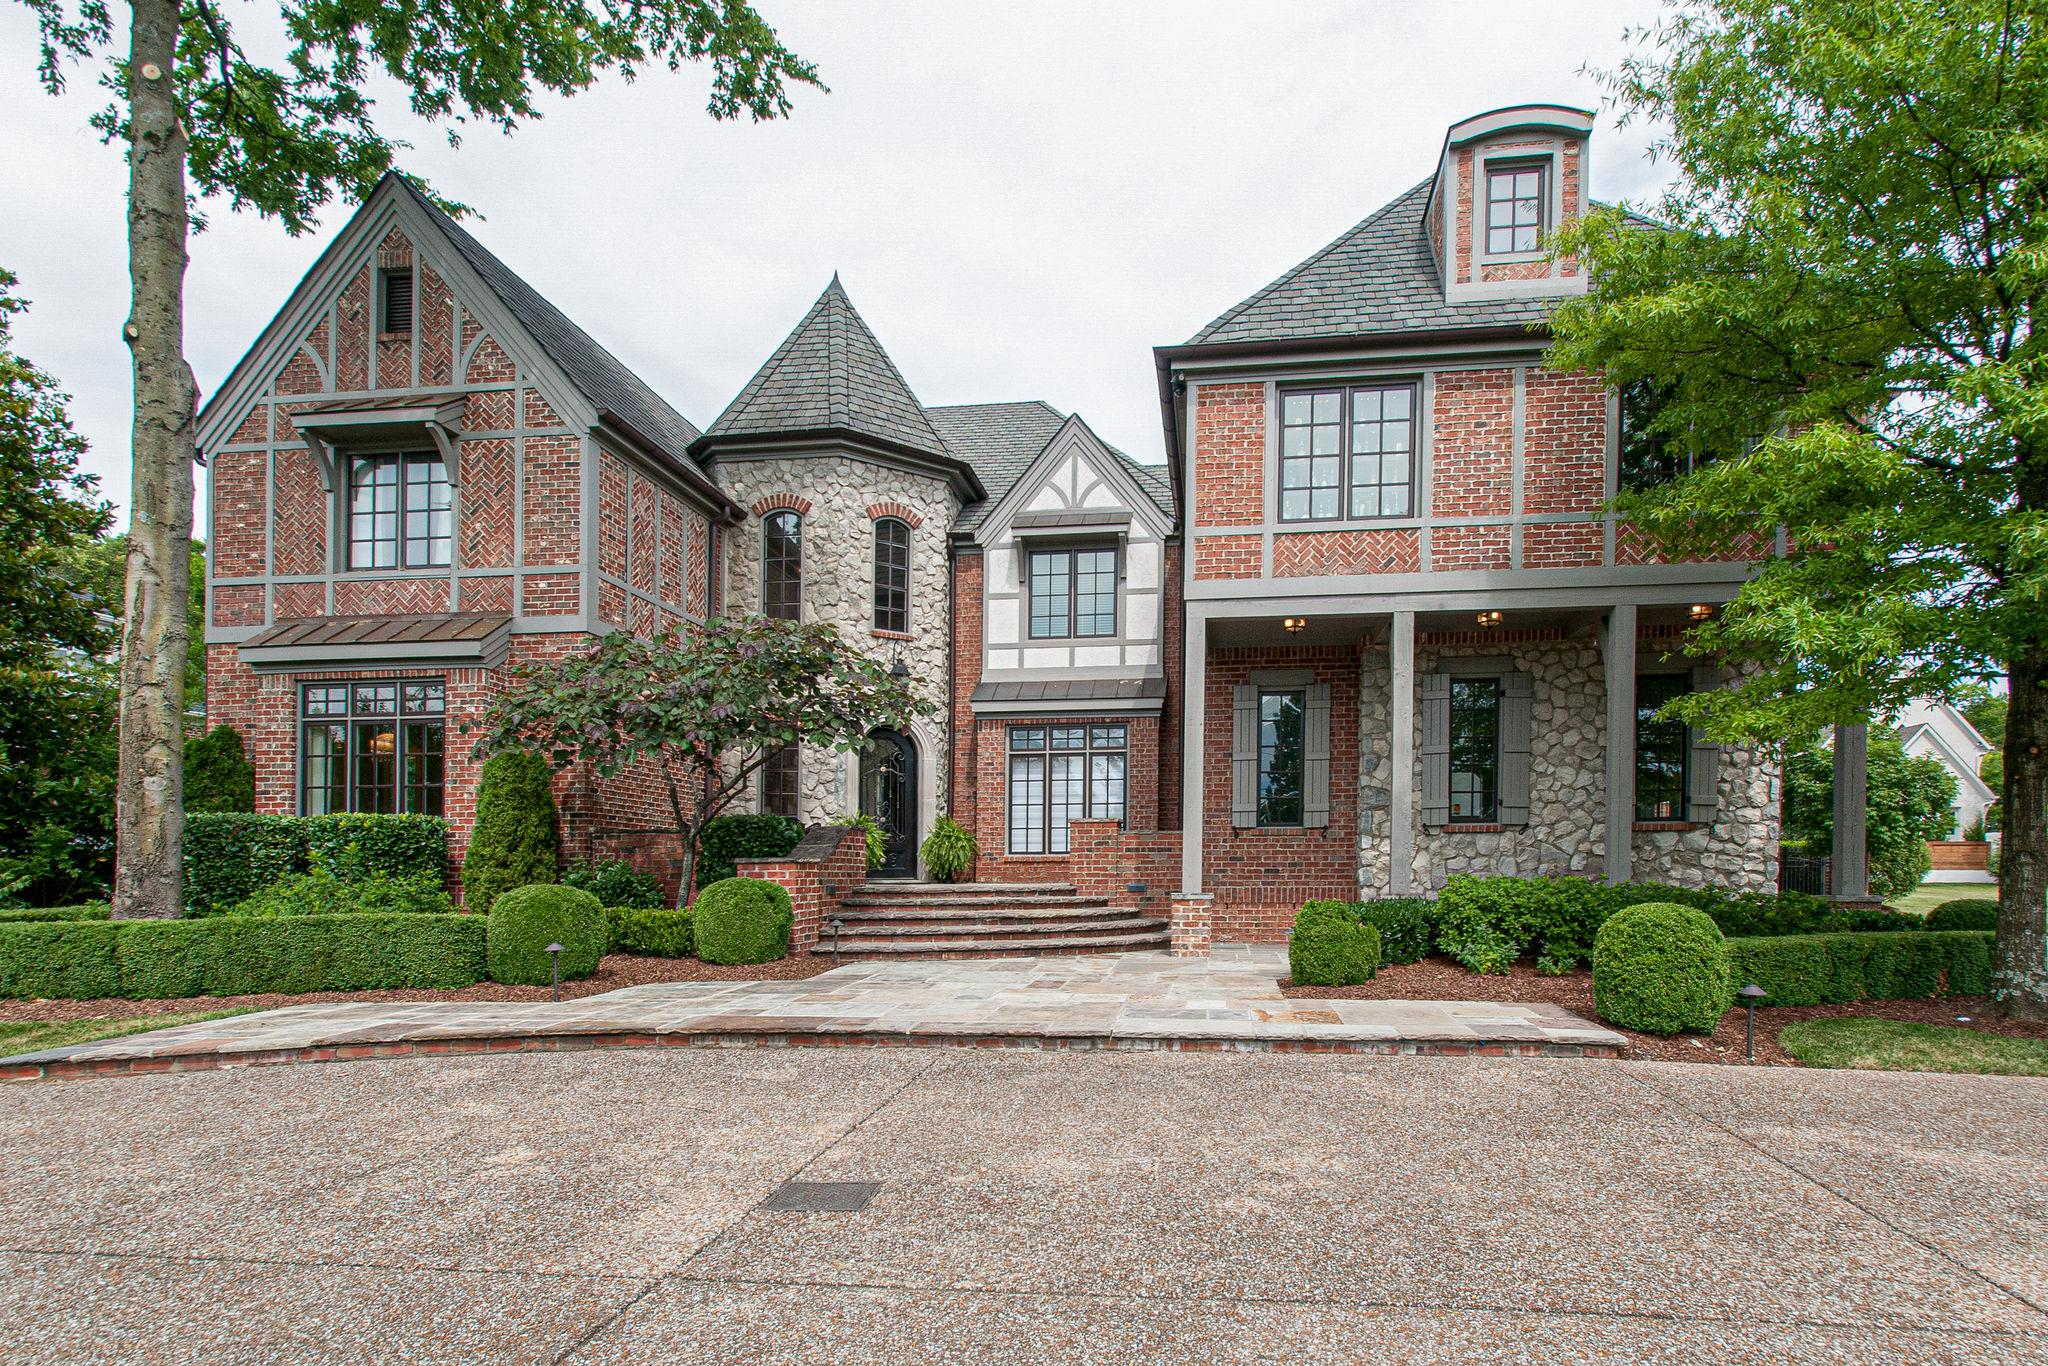 $2,550,000 - 5Br/9Ba -  for Sale in Noel Watkins Grove, Nashville